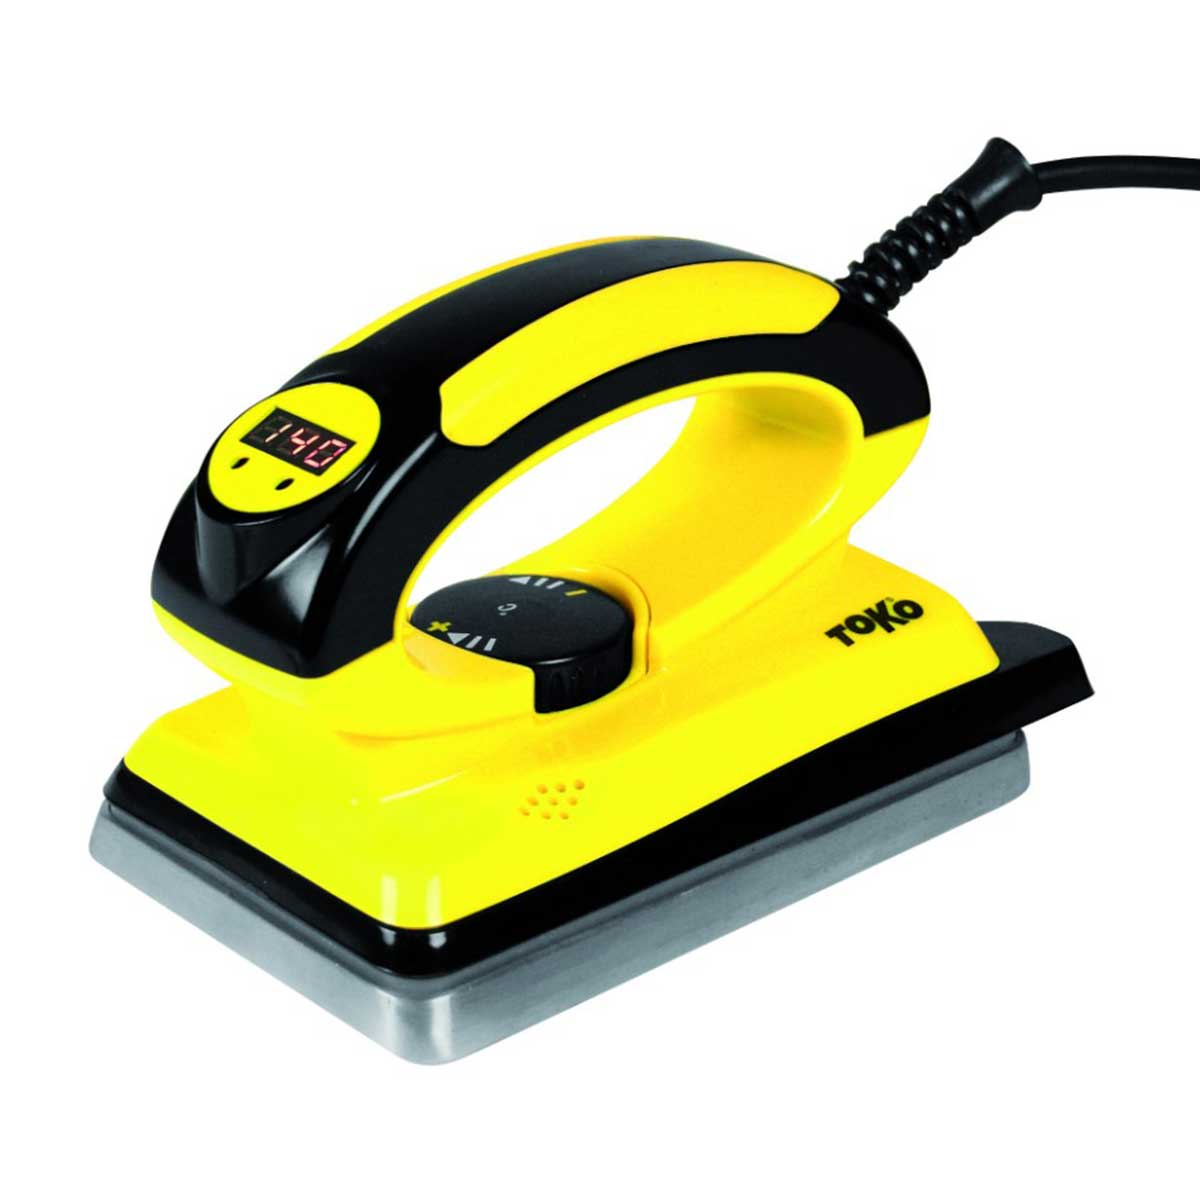 Toko T14 Digital 1200W Iron in Yellow